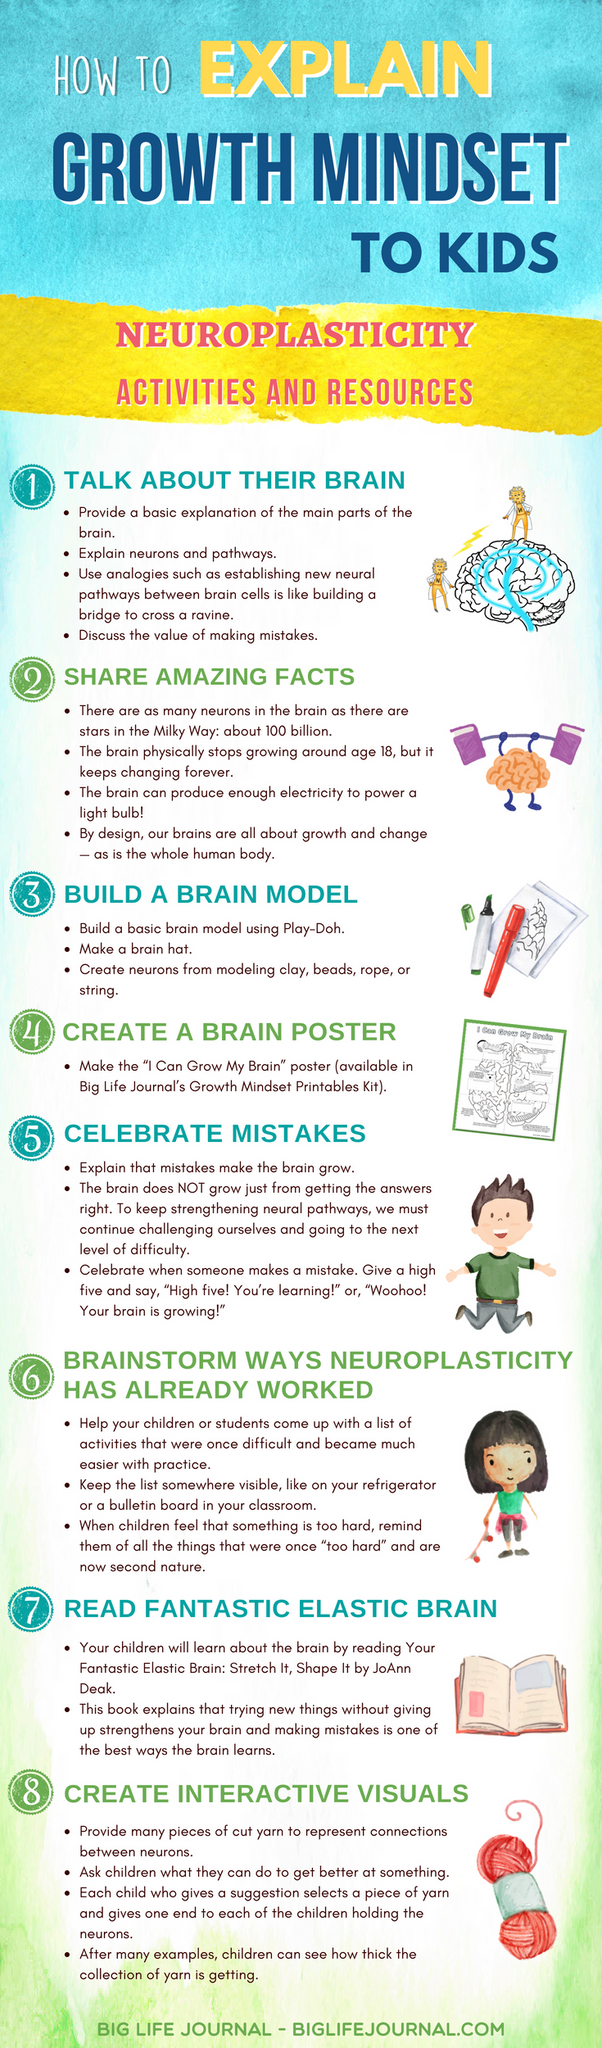 growth mindset kids activities resources